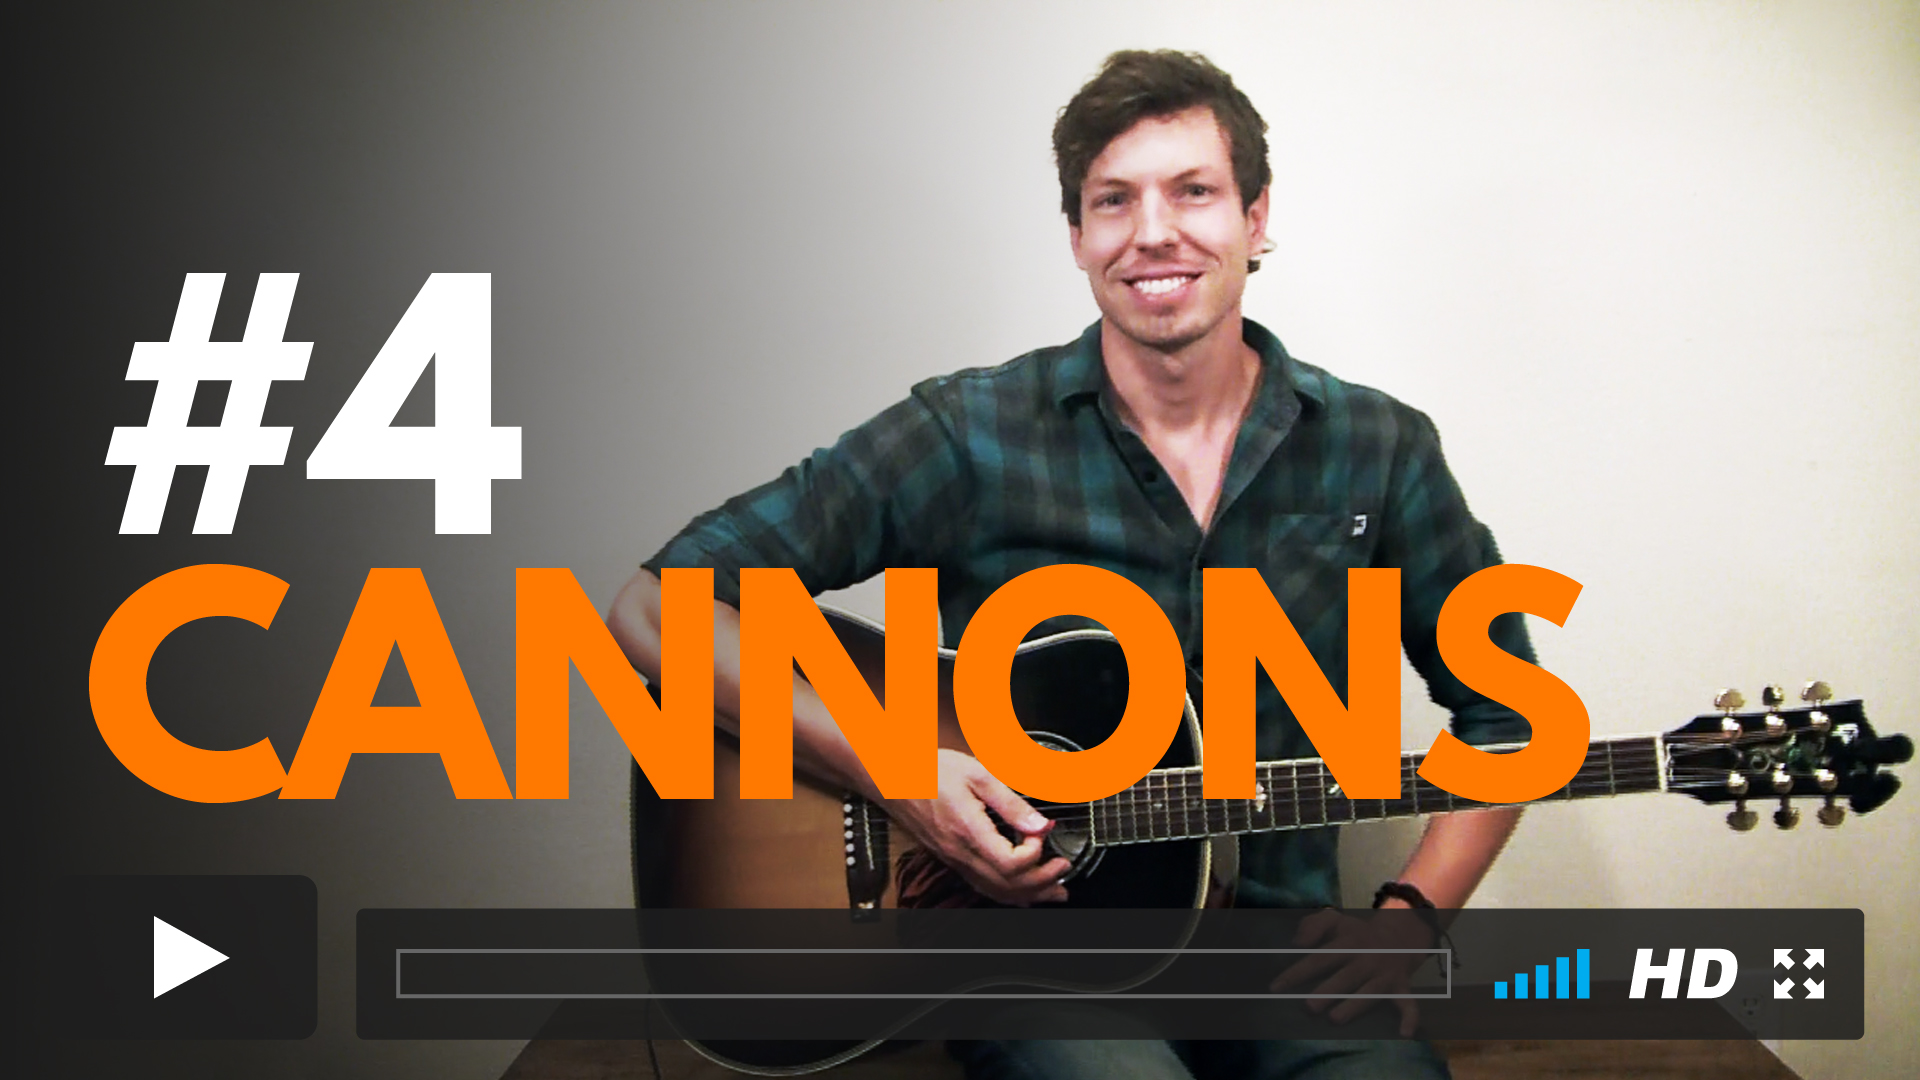 Learn new chords, the major scale, dynamics, and more!